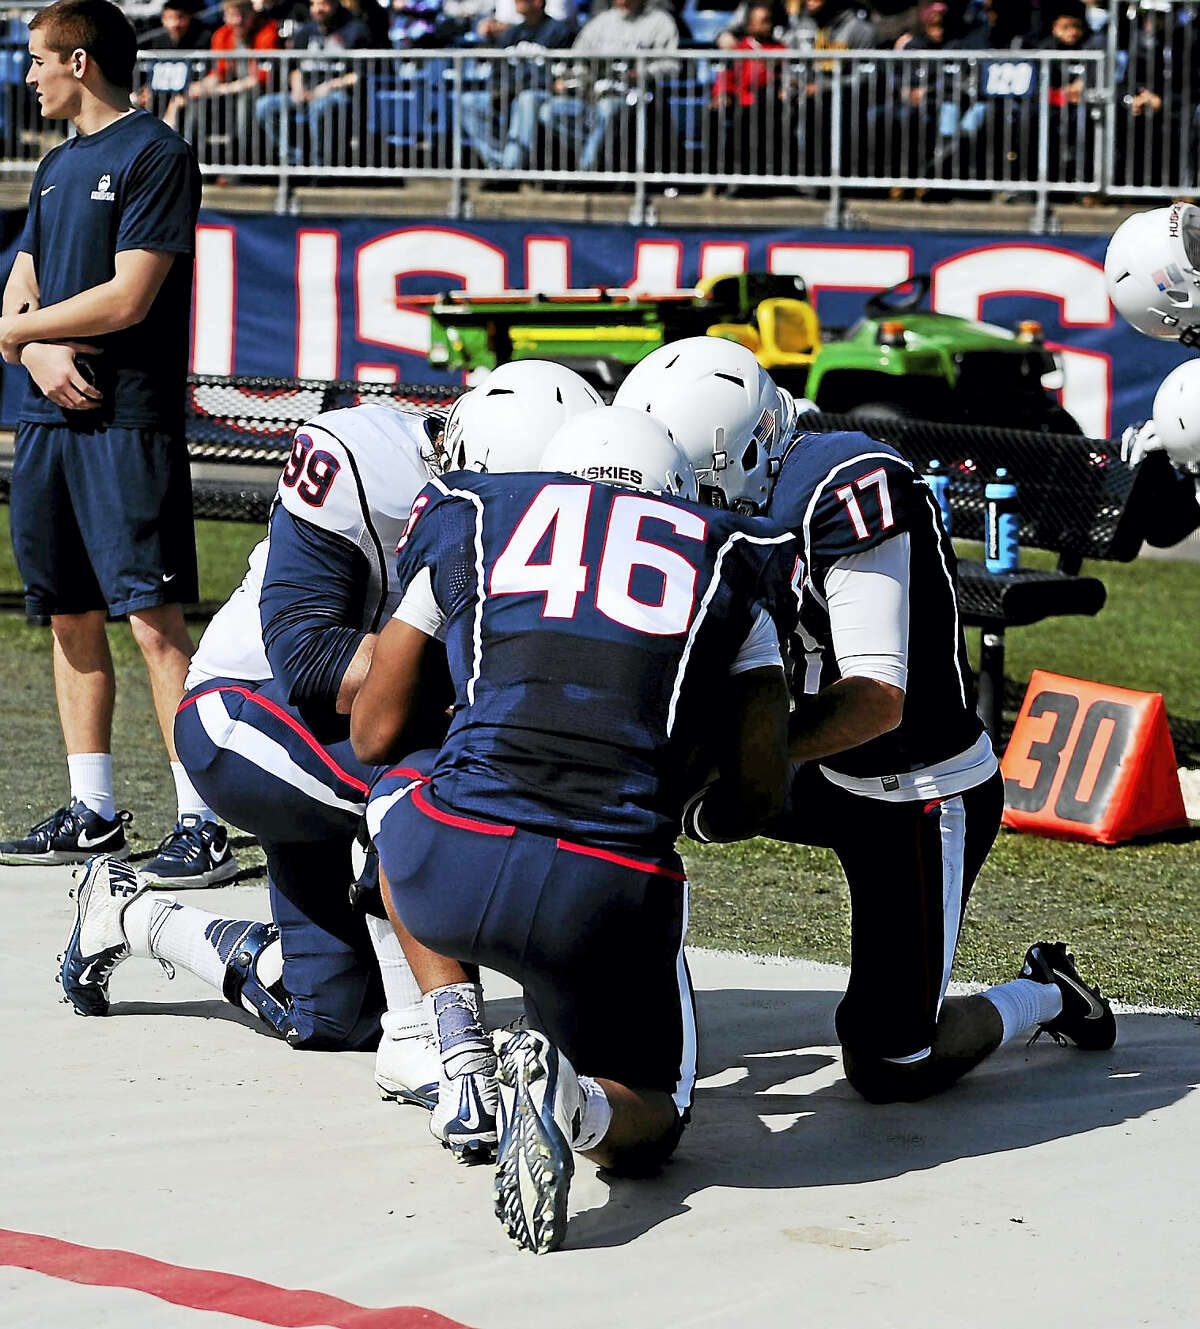 Connecticut's Sean Marinan, left, Marquiese Vann, center, and Bobby Puyol, right, kneel together before during UConn's Blue-White spring game at Rentschler Field last April 11. Marinan will be a scholarship player for this year's spring game.